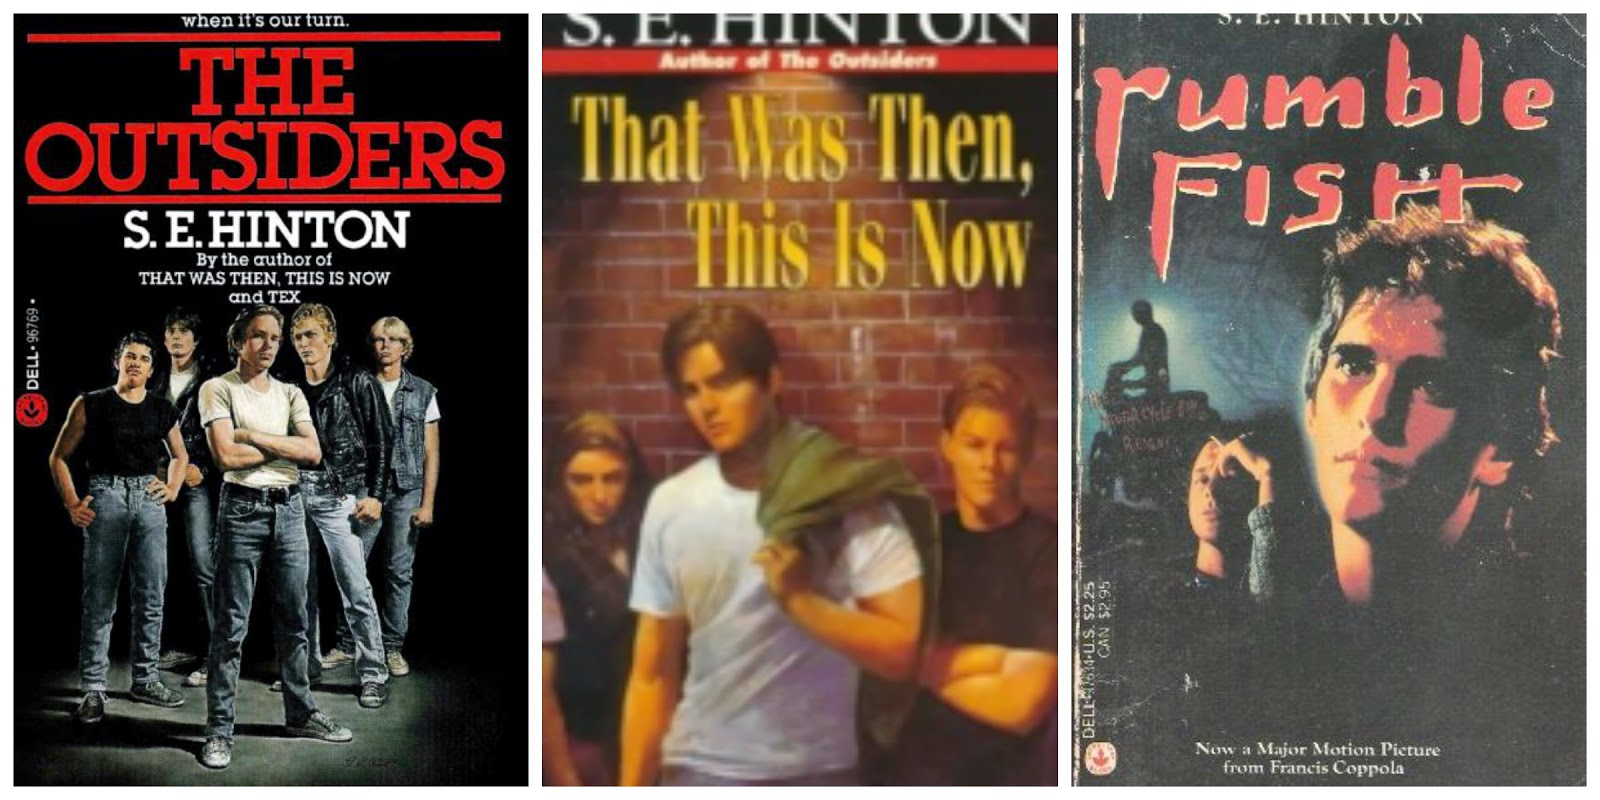 an analysis of the outsiders by s e hinton The east side where ponyboy and the whole gang live is labeled by the socs where all the greaser boys live for example,  its like the term external conflict: man vs nature external conflict: man vs man internal conflict: man vs himself conflict: the outsiders by se hinton conflict analysis by.